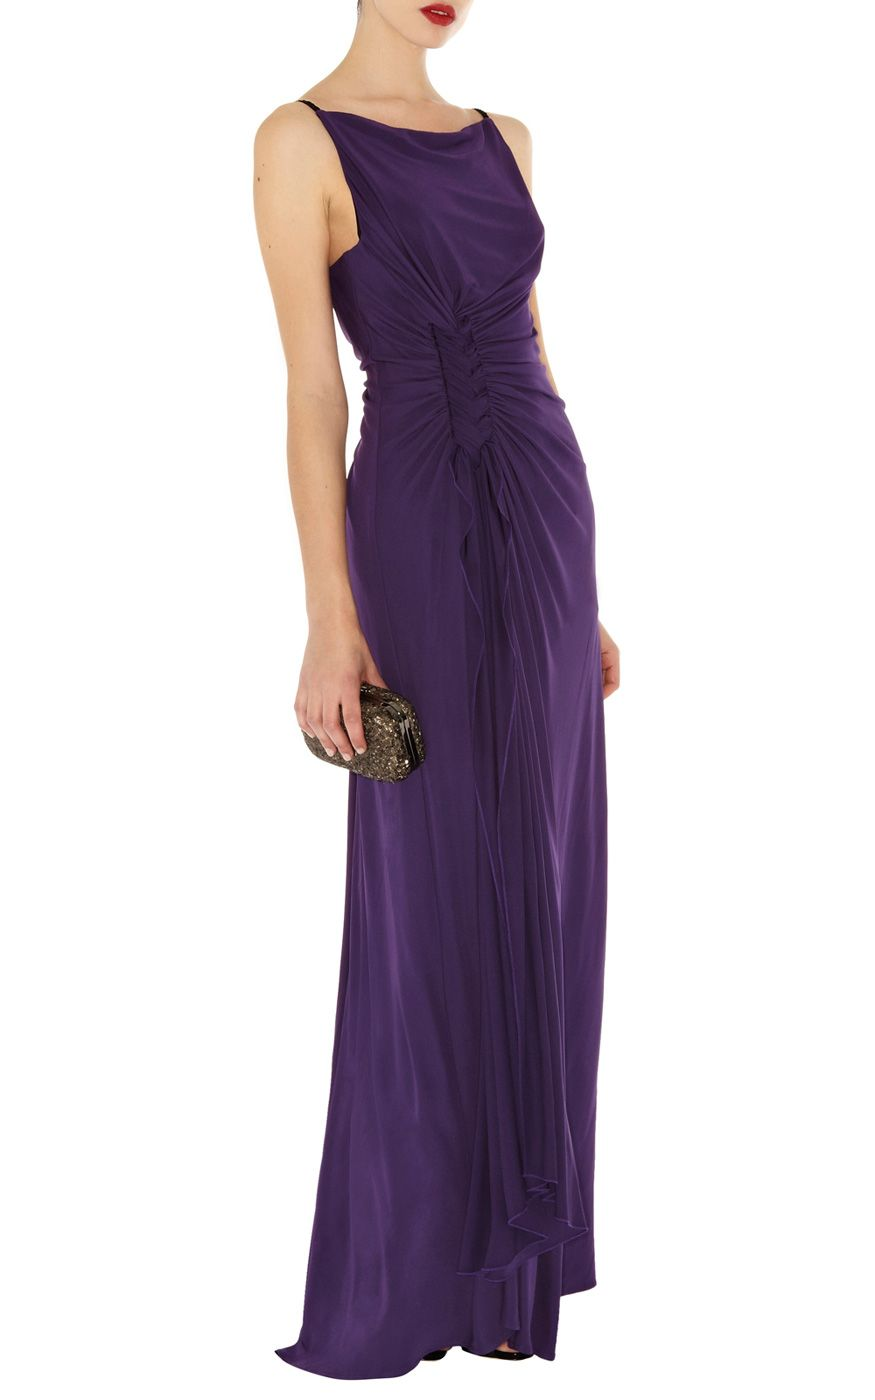 rache what everyone think about this? | bridesmaid dresses | Pinterest